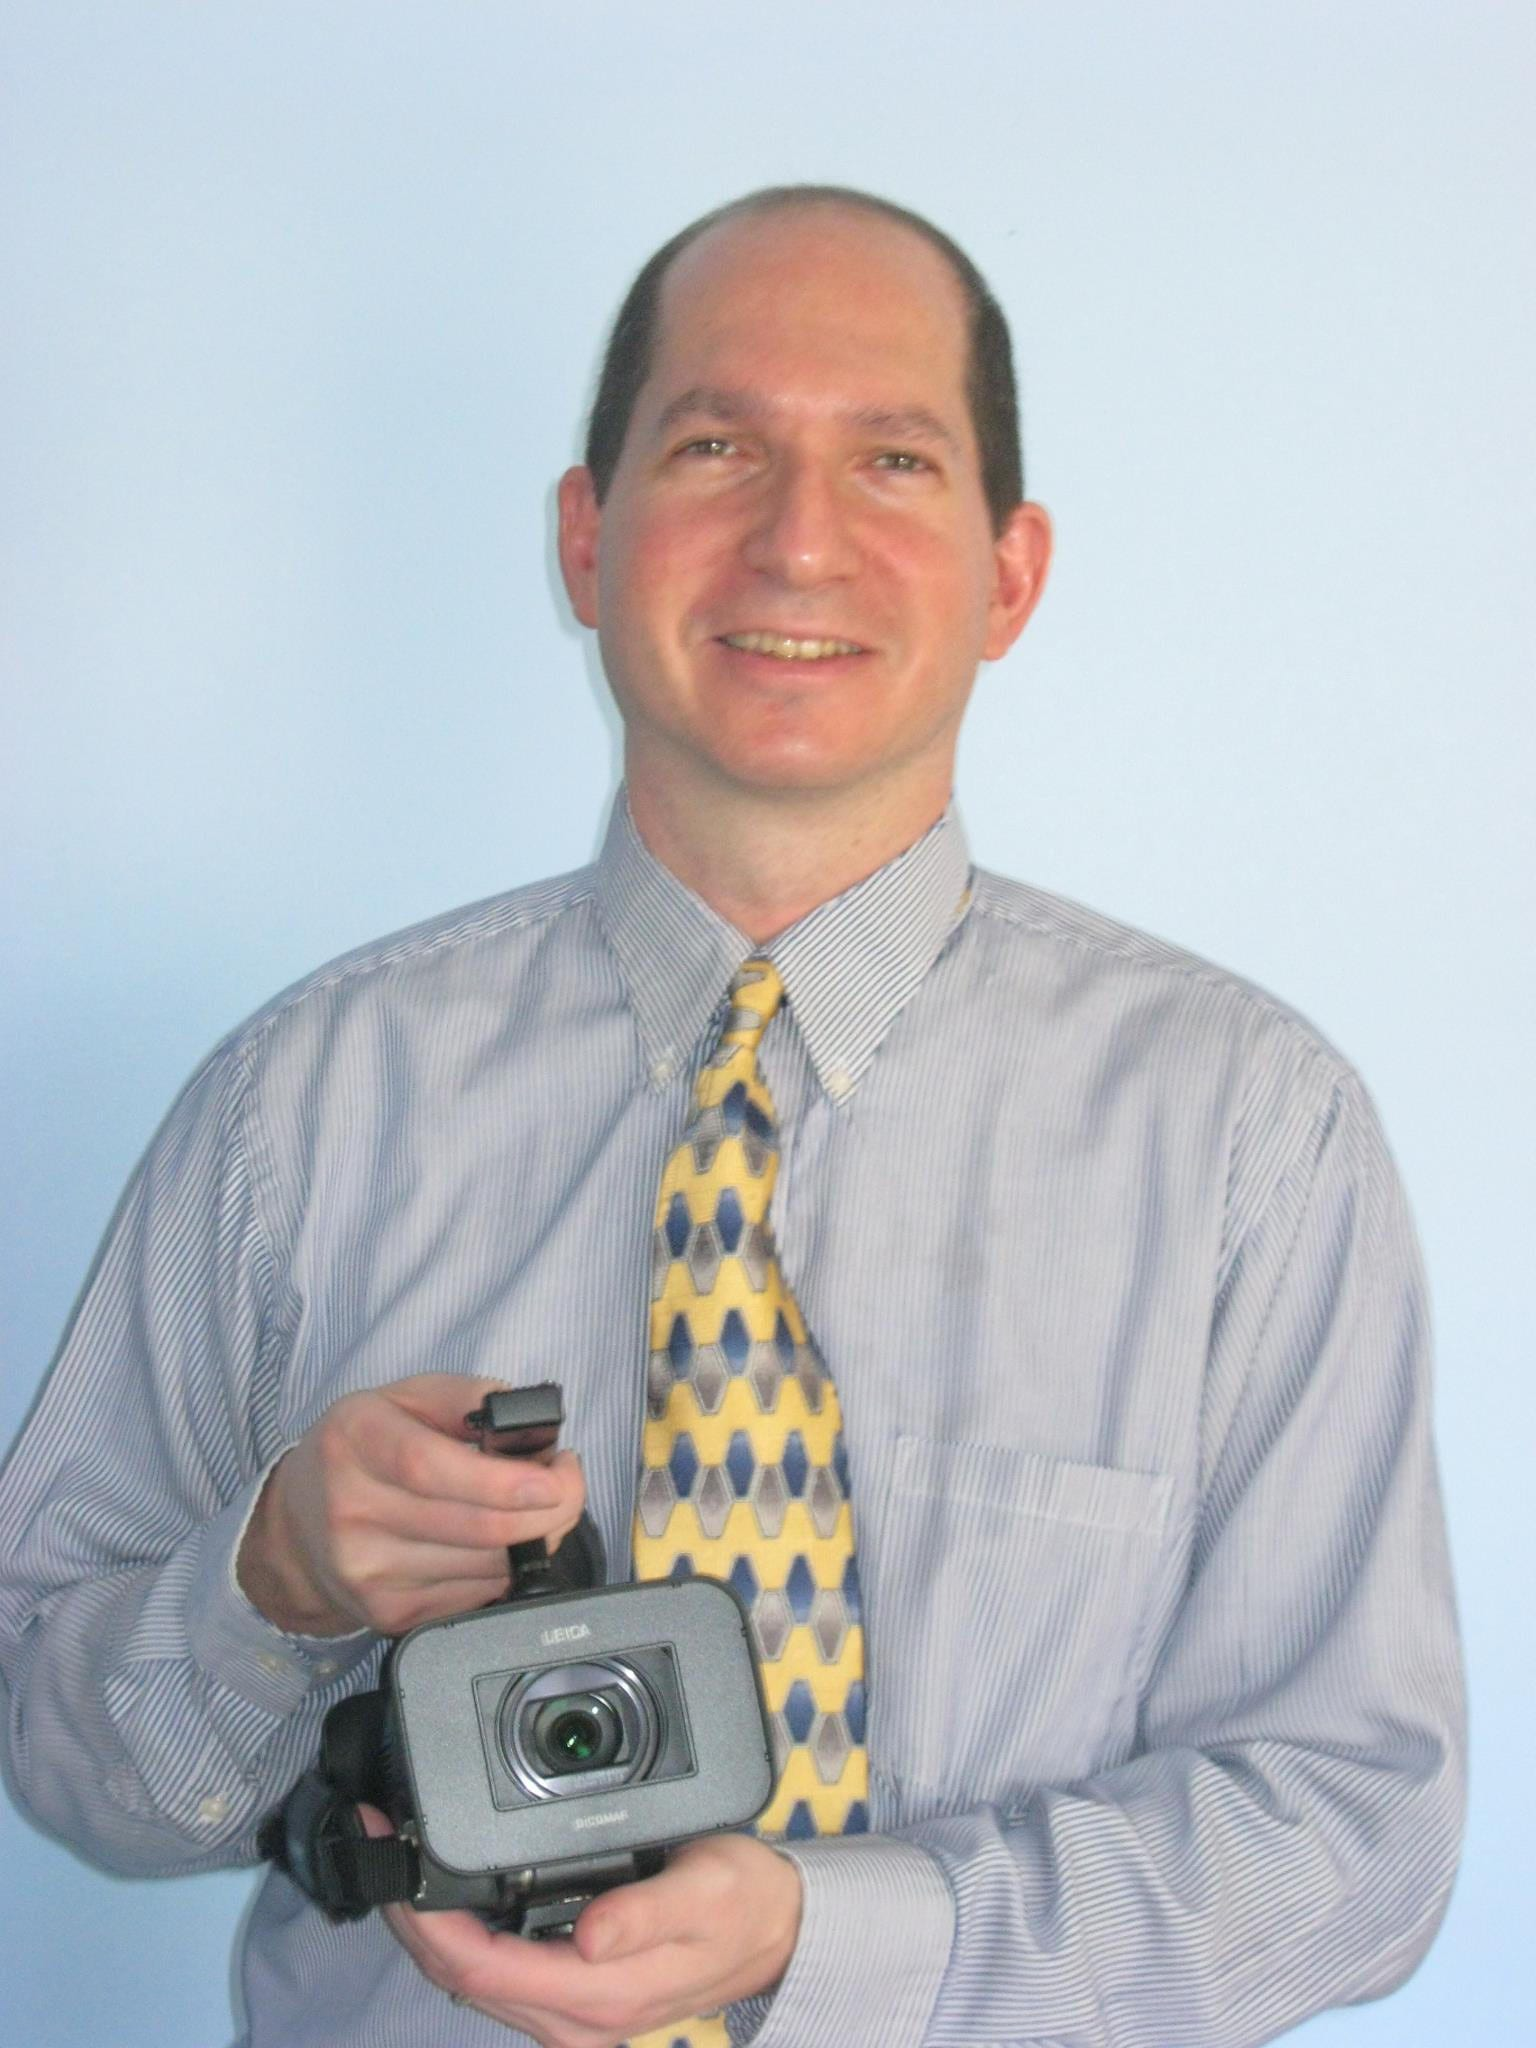 Andy Kershenblatt has owned and operated ExtraStep Films for over 25 years.